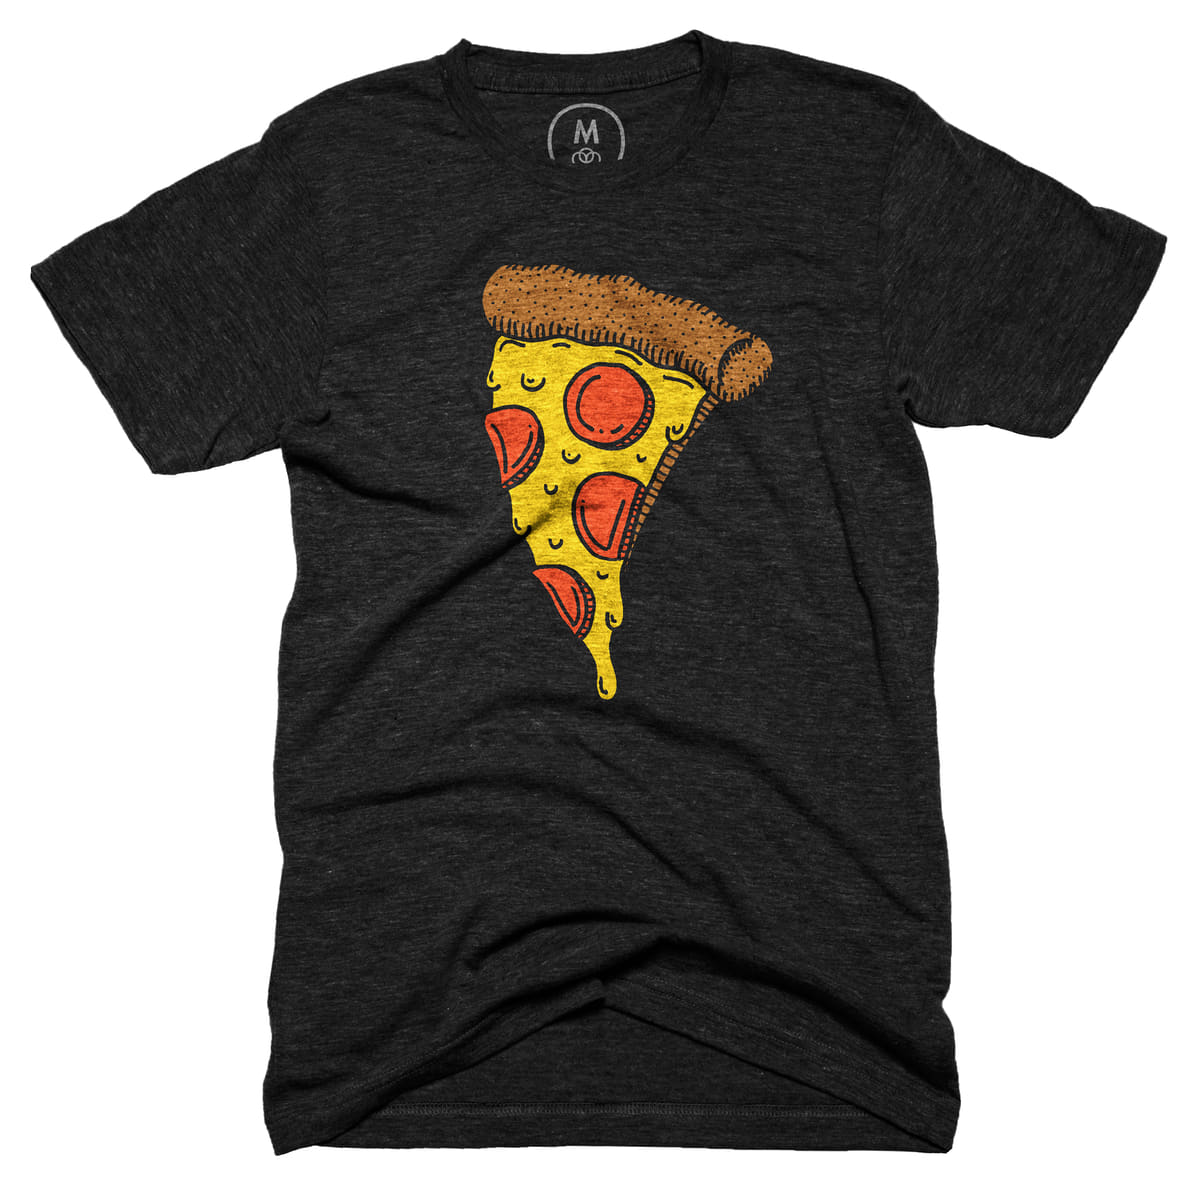 Oh Pizza! by Jason Heglund